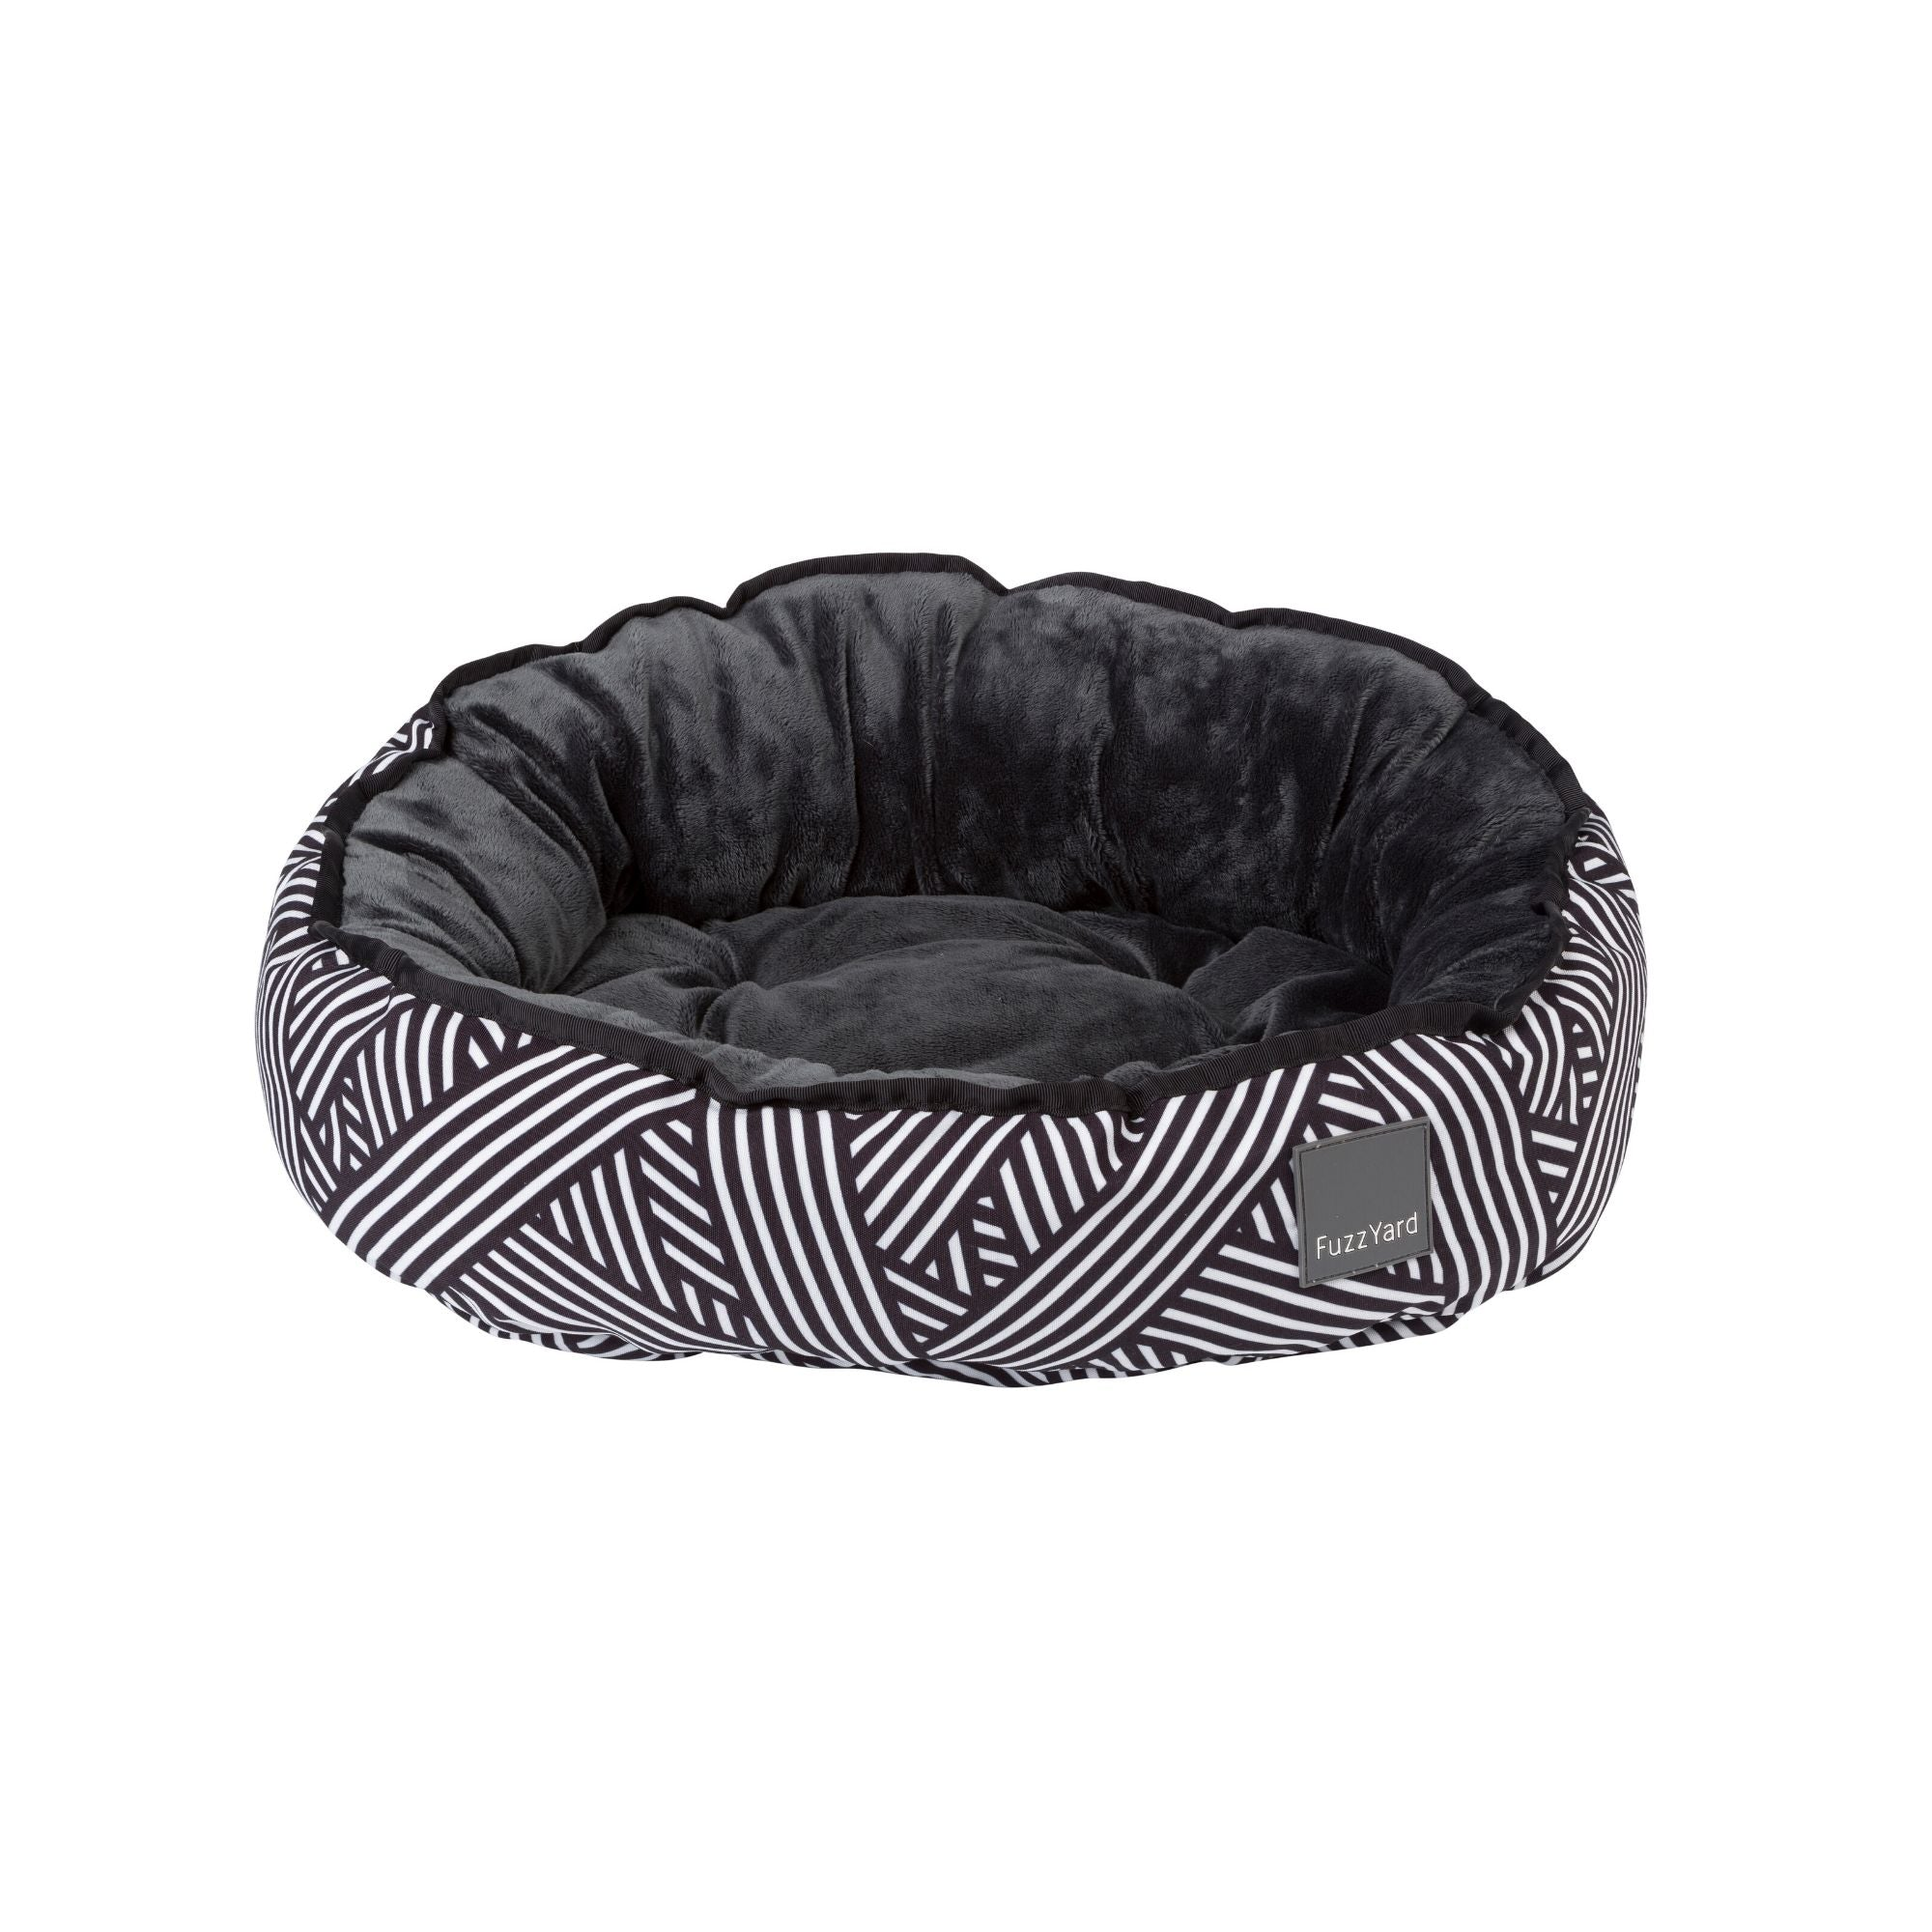 Fuzzyard Northcote Dog Bed, Reversible Fabrics | Barks & Bunnies